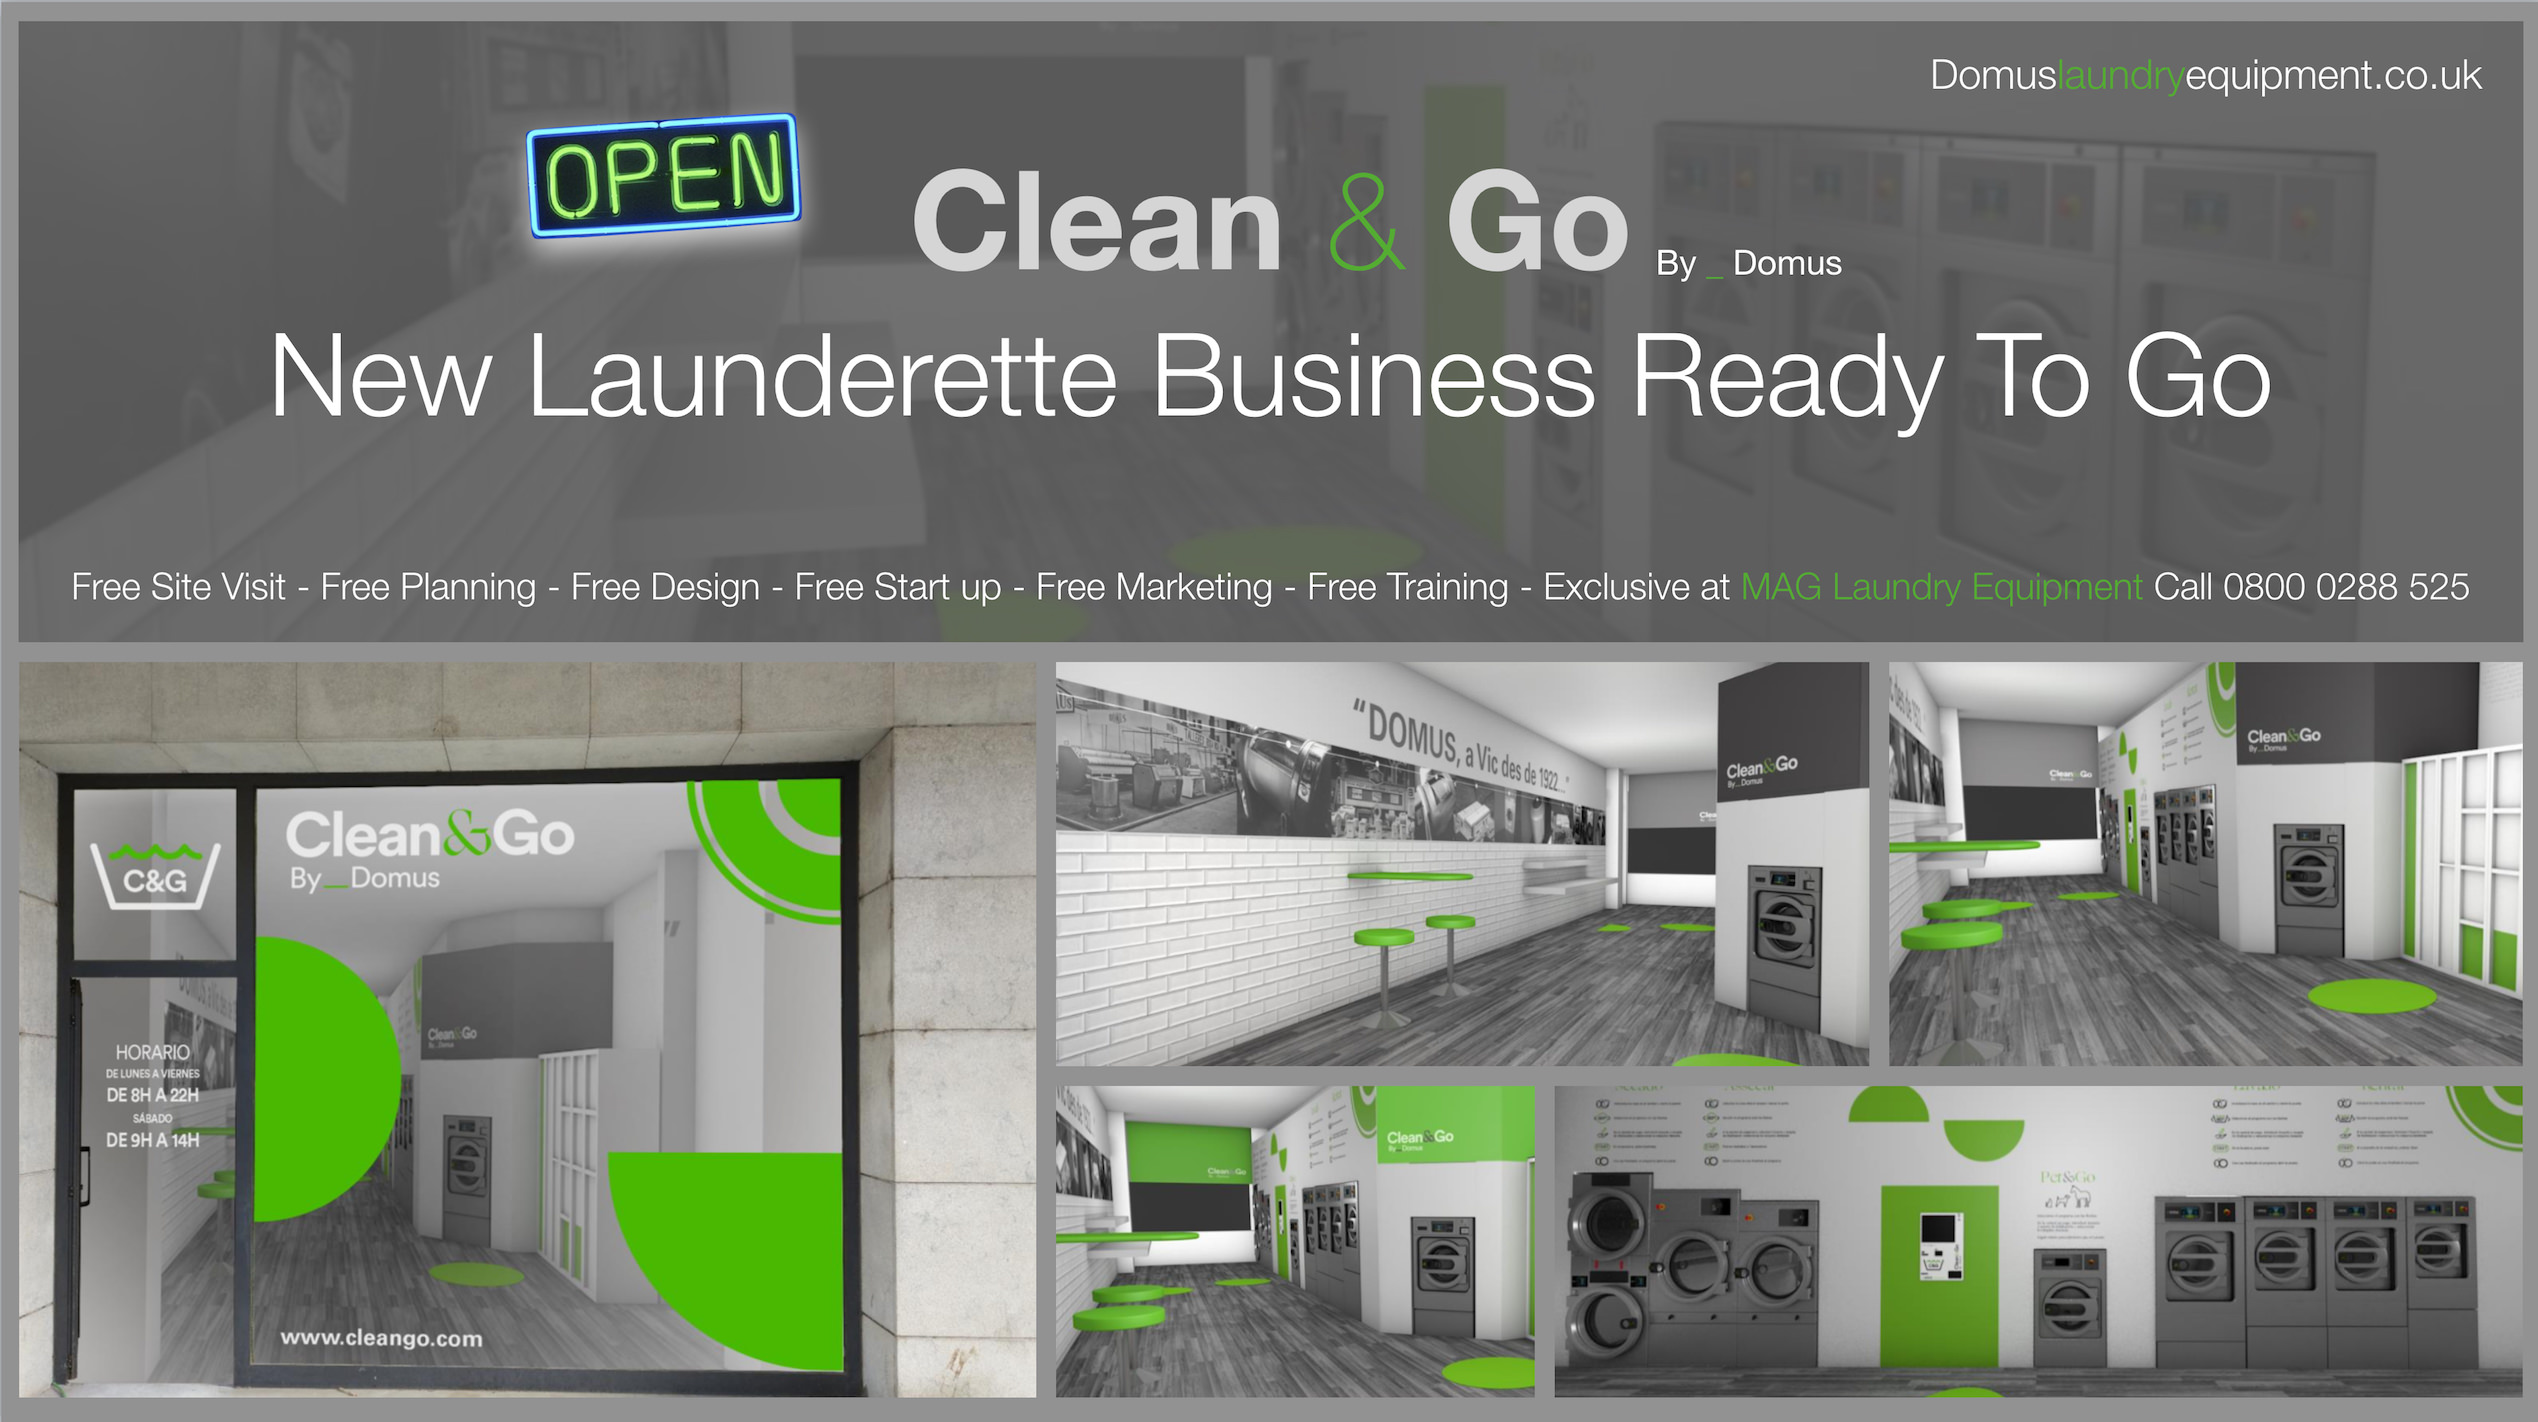 Starting a self-service launderette business 2018 free info pack